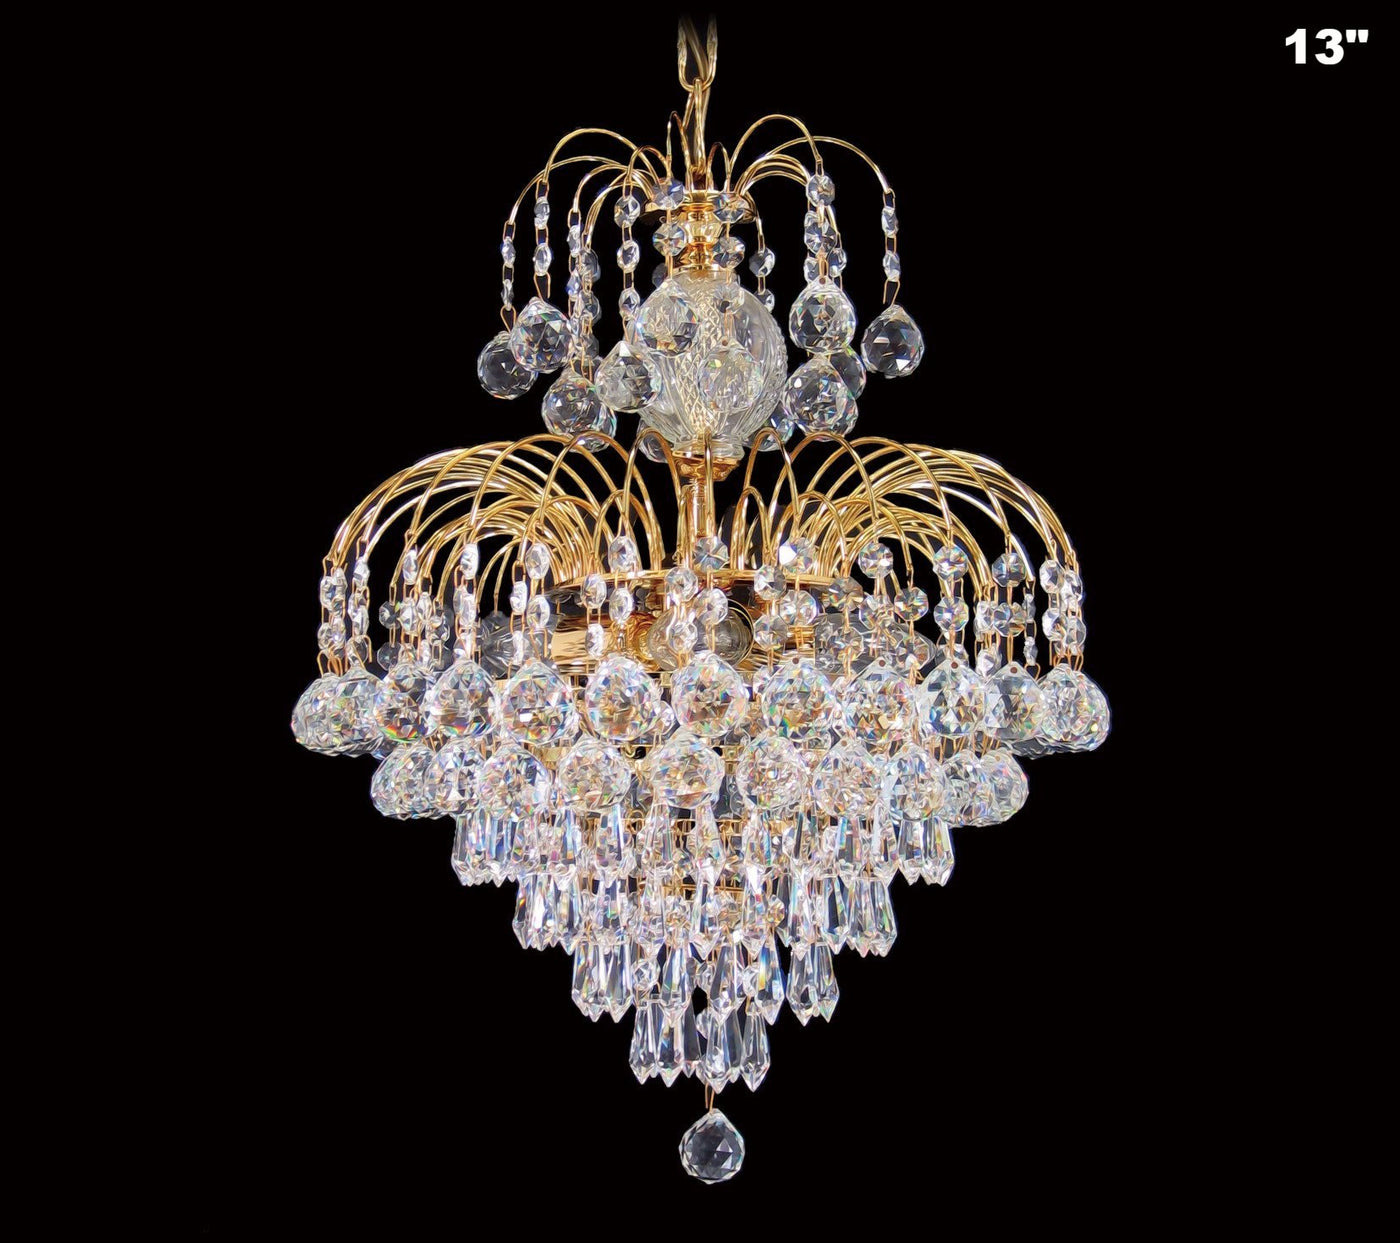 asfour products beads balls chandelier sizes light prismas crystal pendant with g all